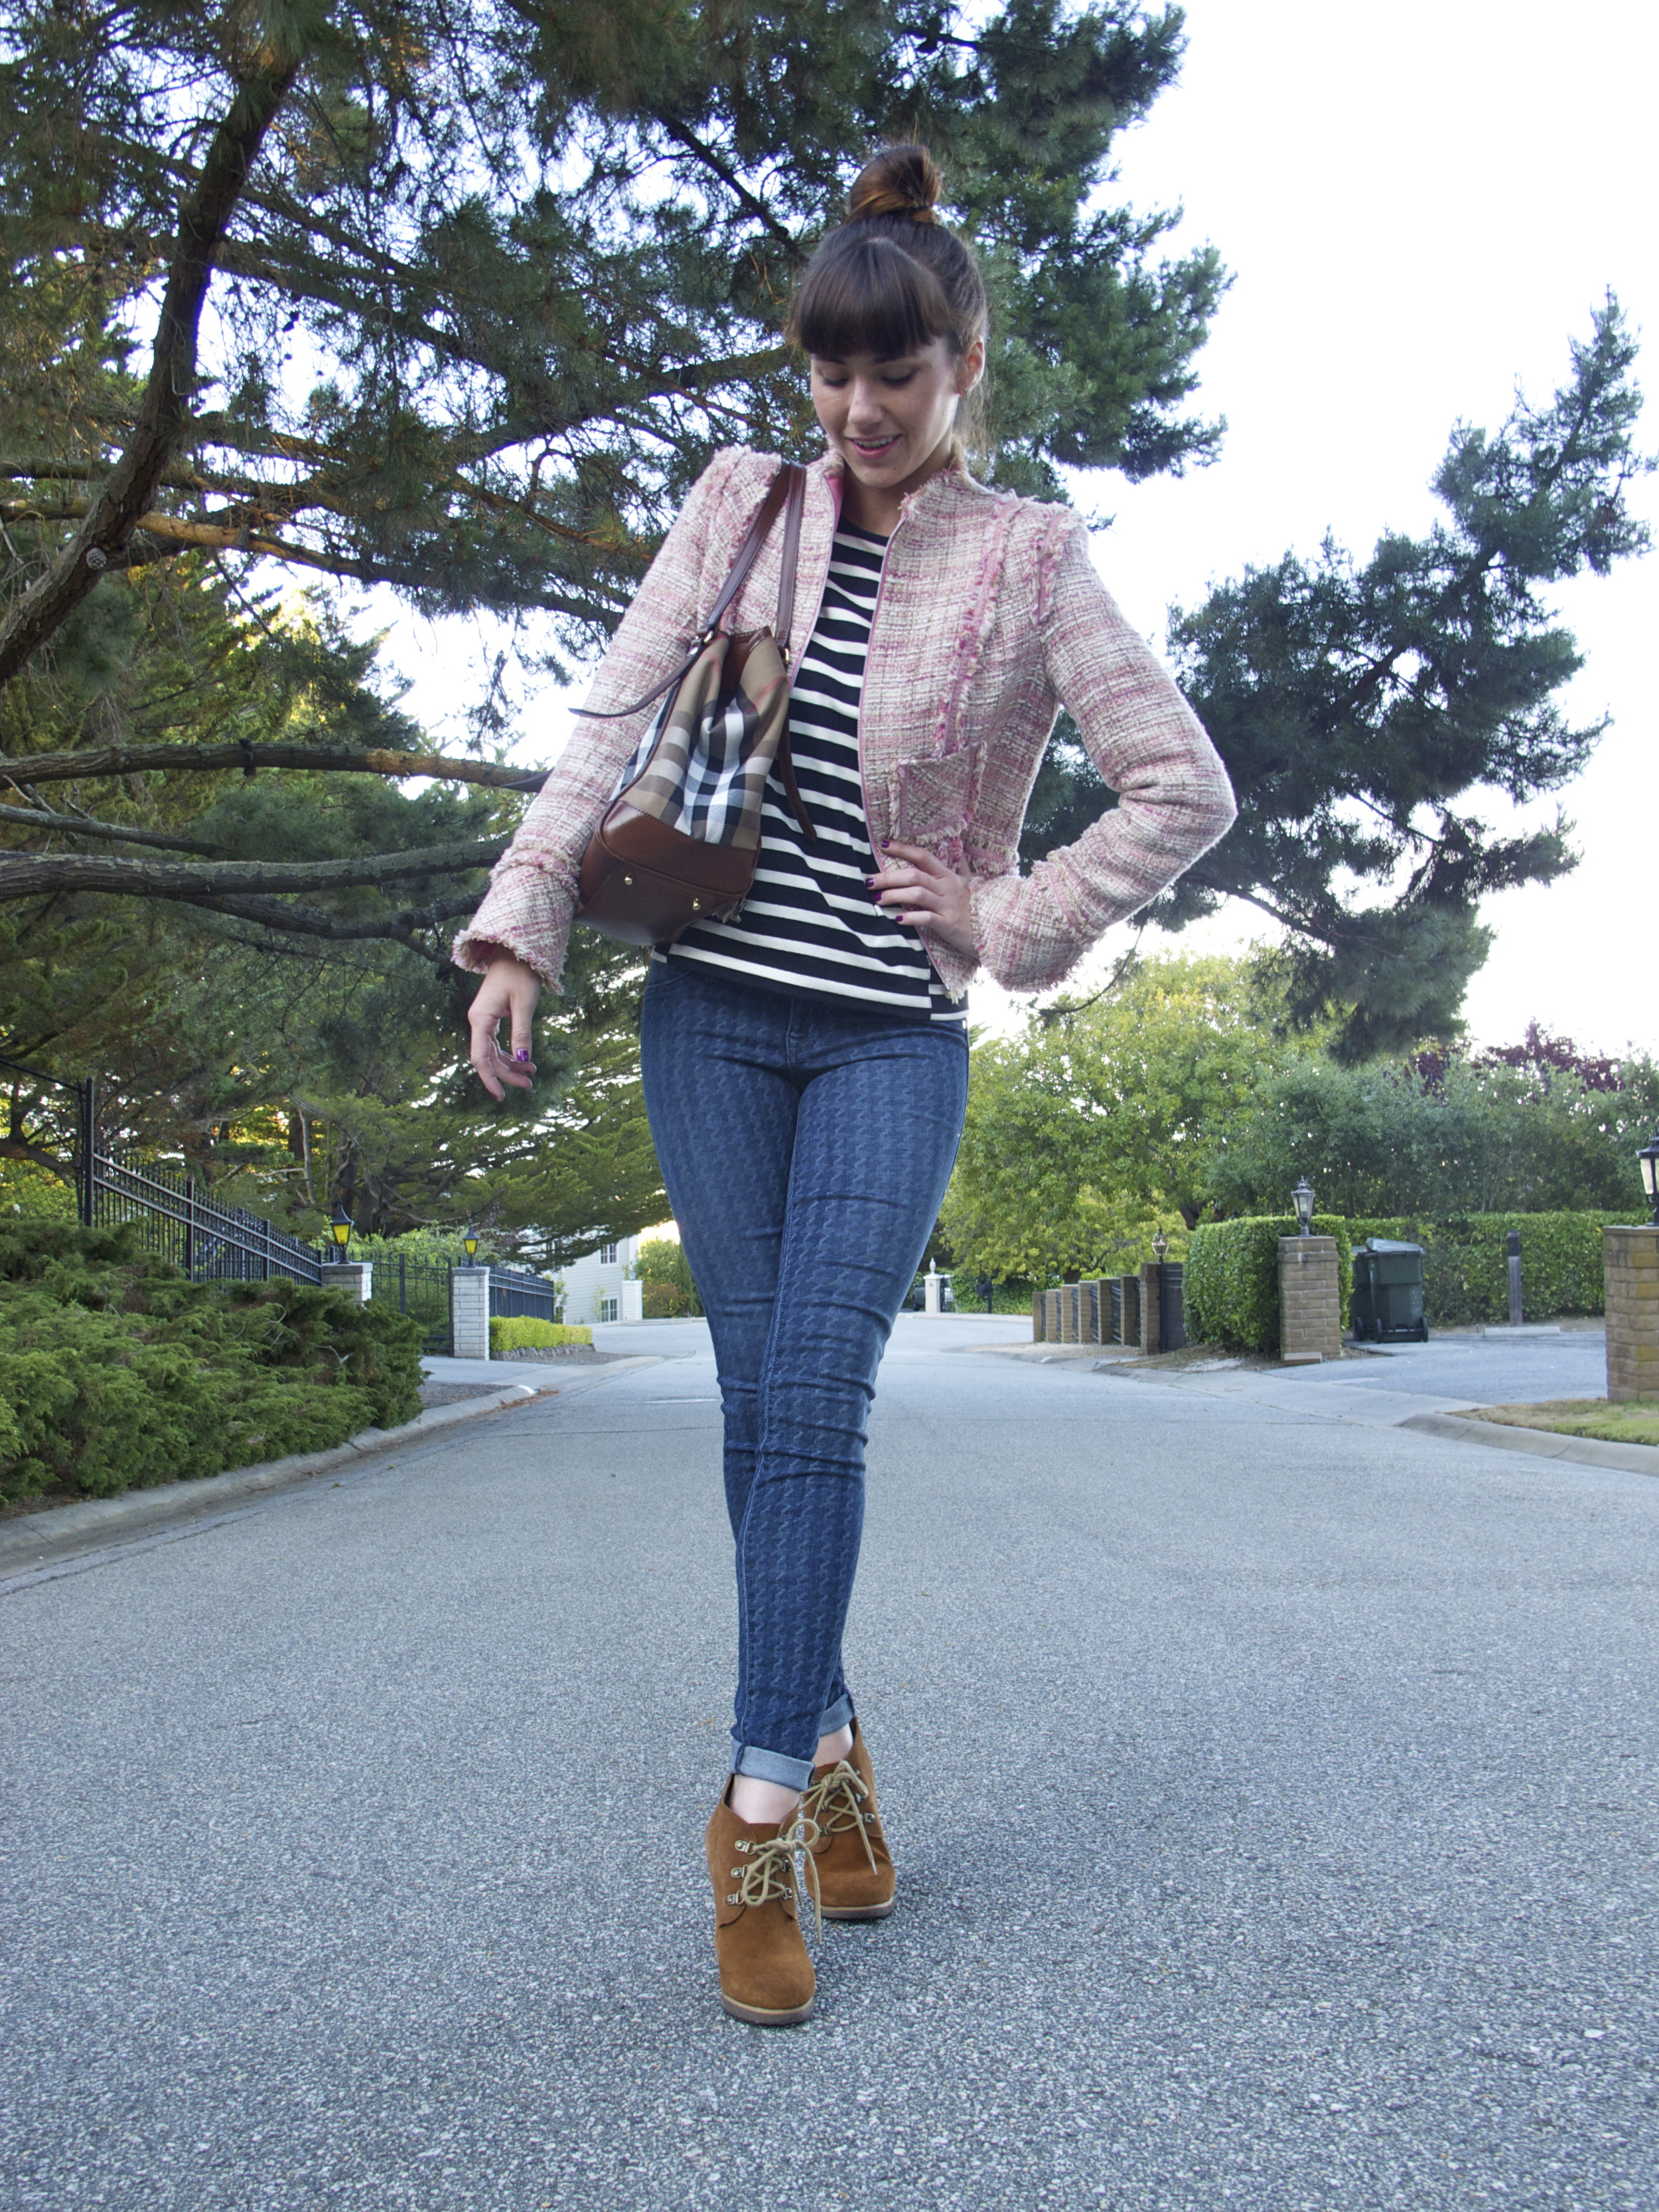 Tweed Jacket: Charles Chang Lima; Stripe Sweater: J.Crew; Skinny Jeans: Level 99, Morning Glory; Booties: Steve Madden; Tote: Burberry